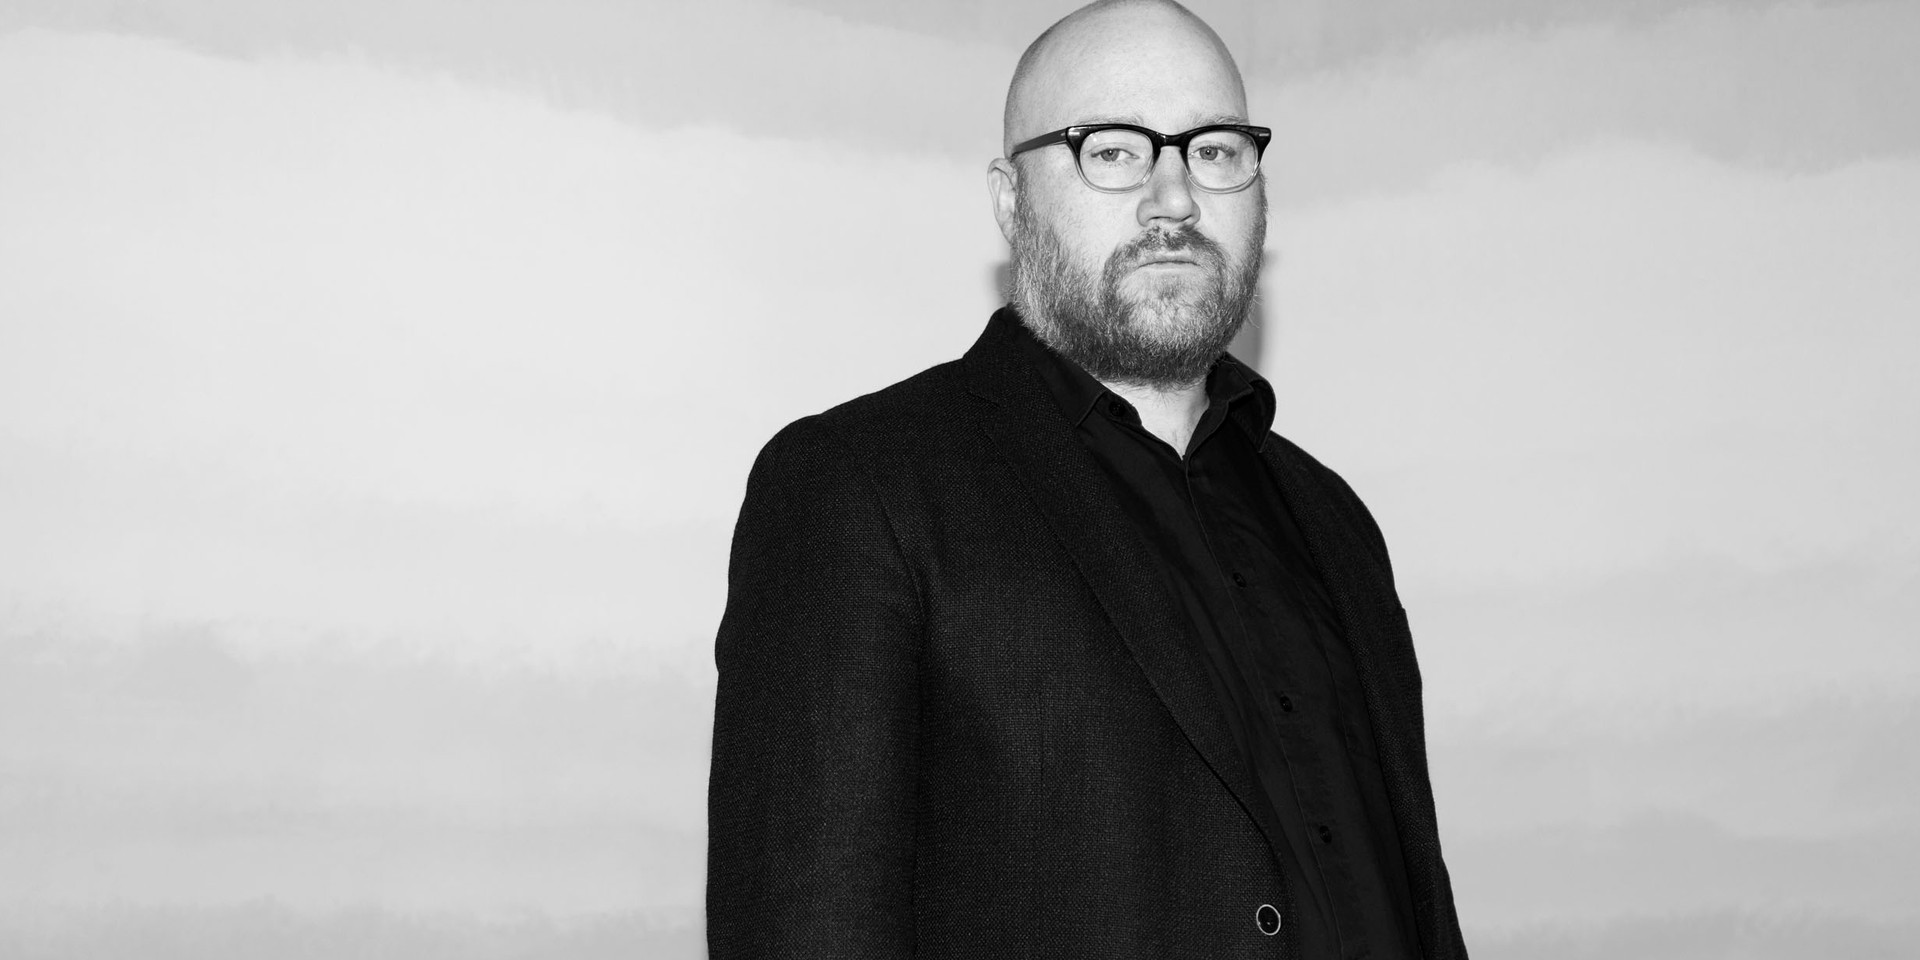 Singaporean musicians pay tribute to Jóhann Jóhannsson a month on from his passing